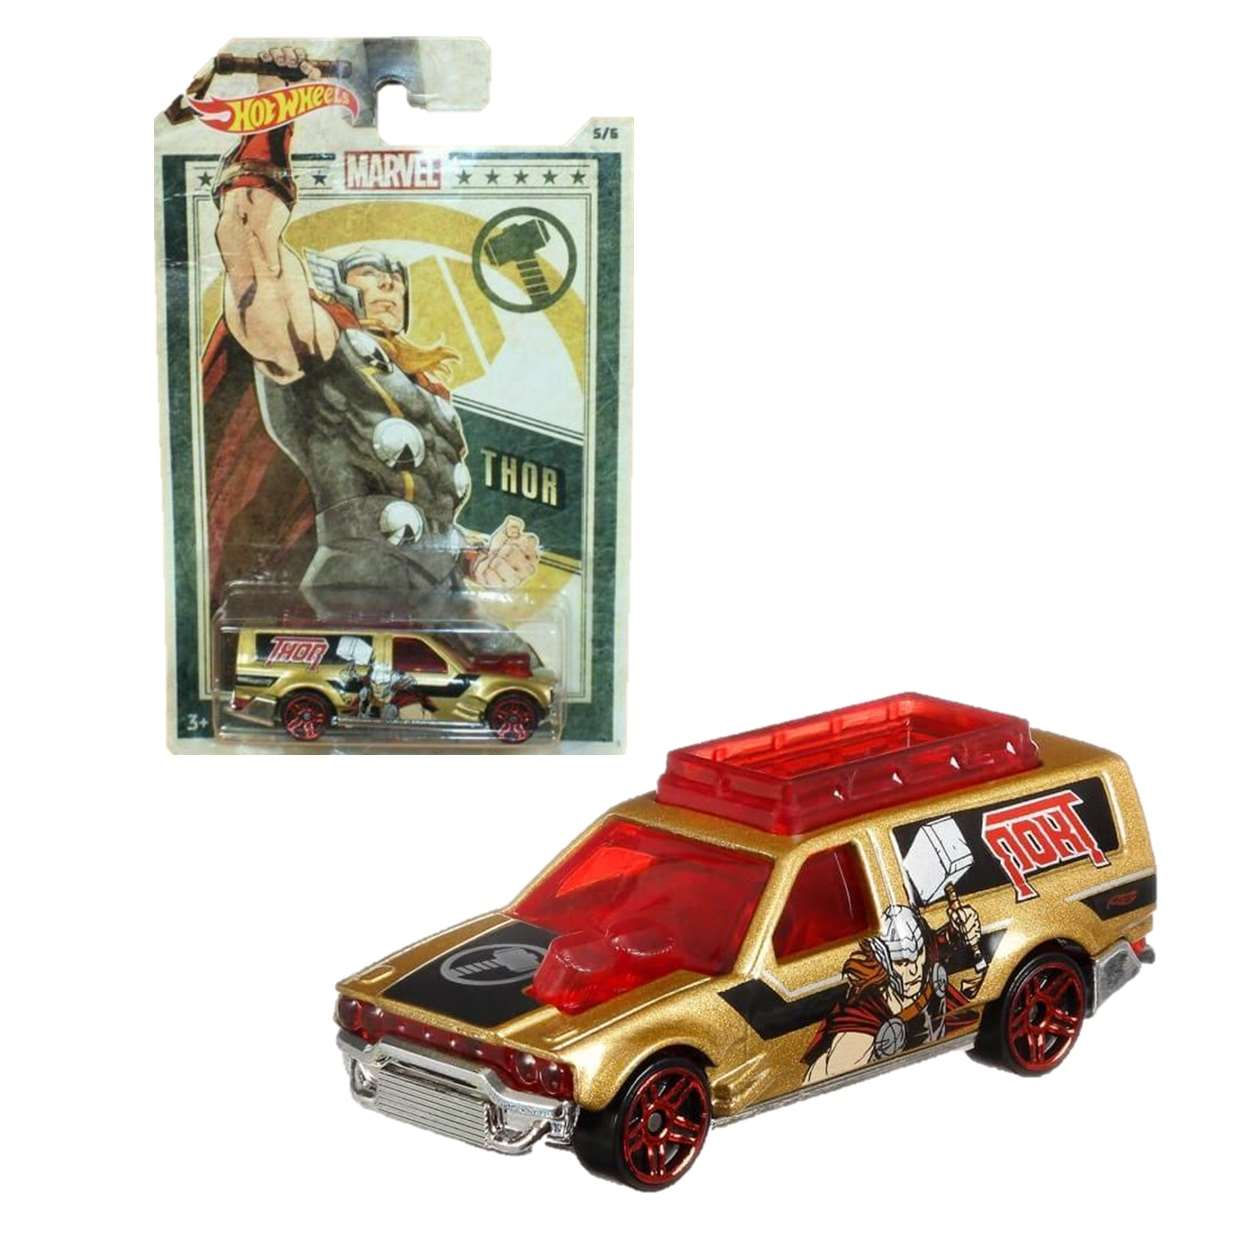 Thor Time Shifter 5/6 Hot Wheels Collect Them All